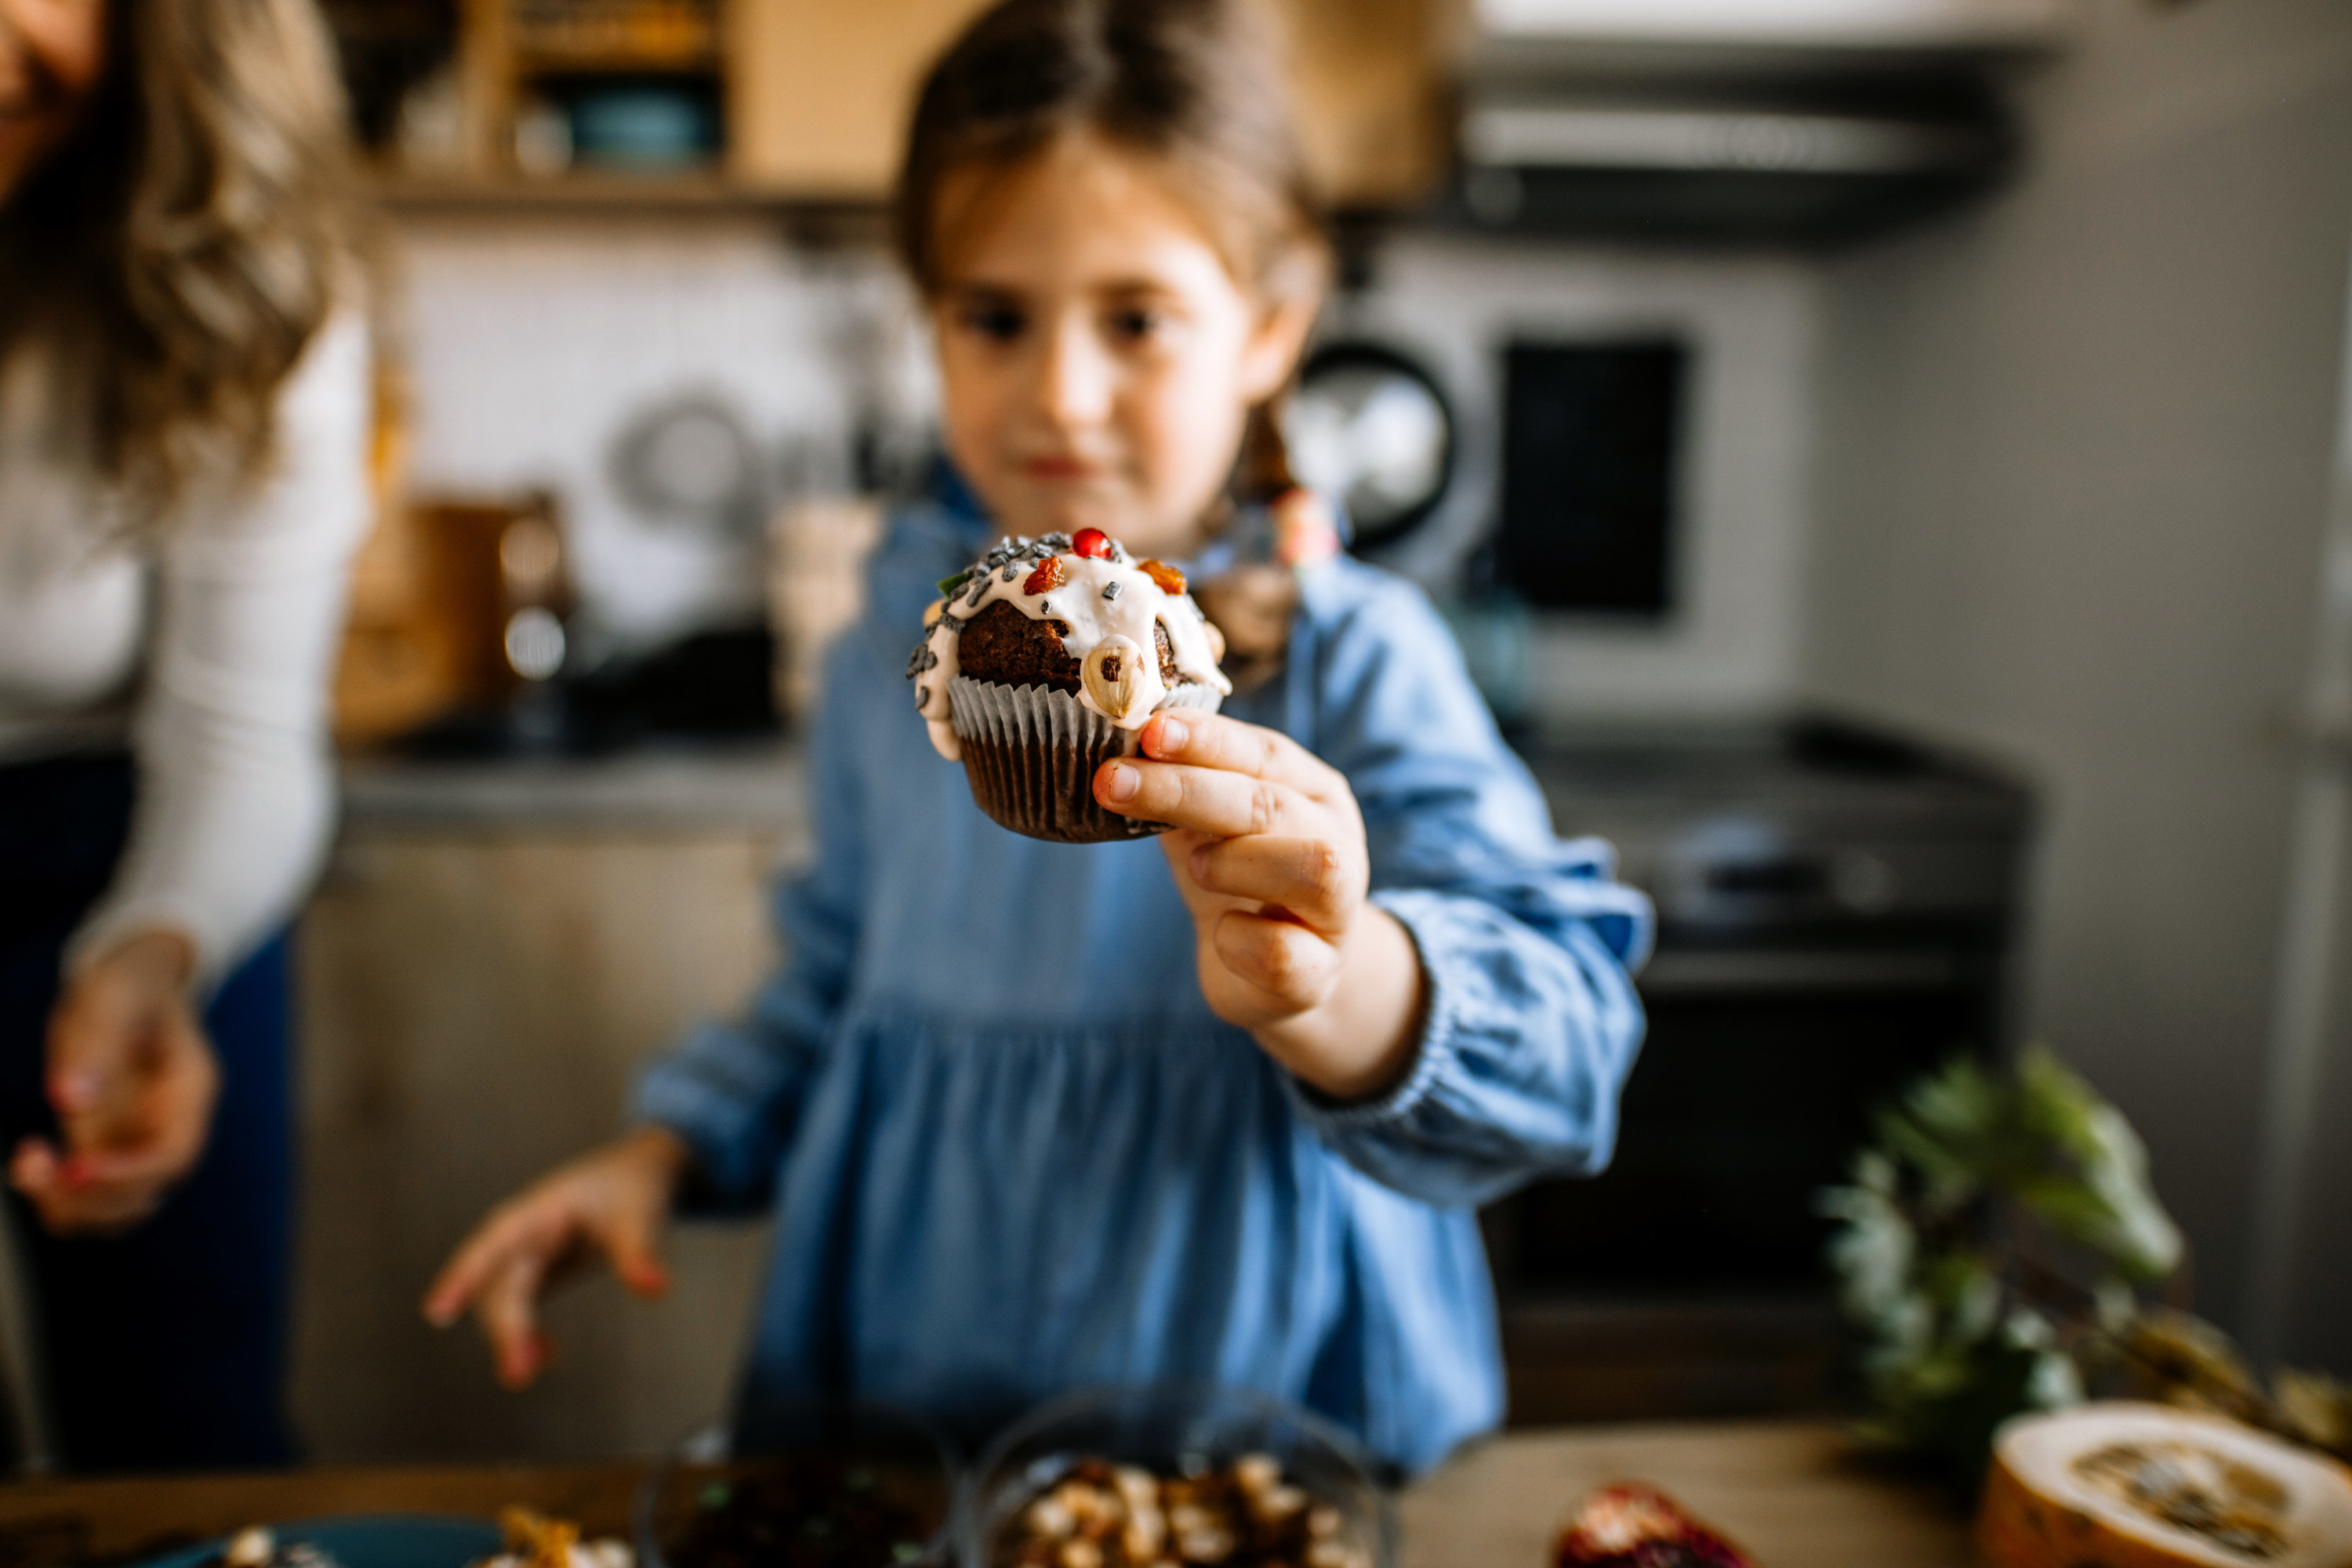 A little girl holds up a cupcake